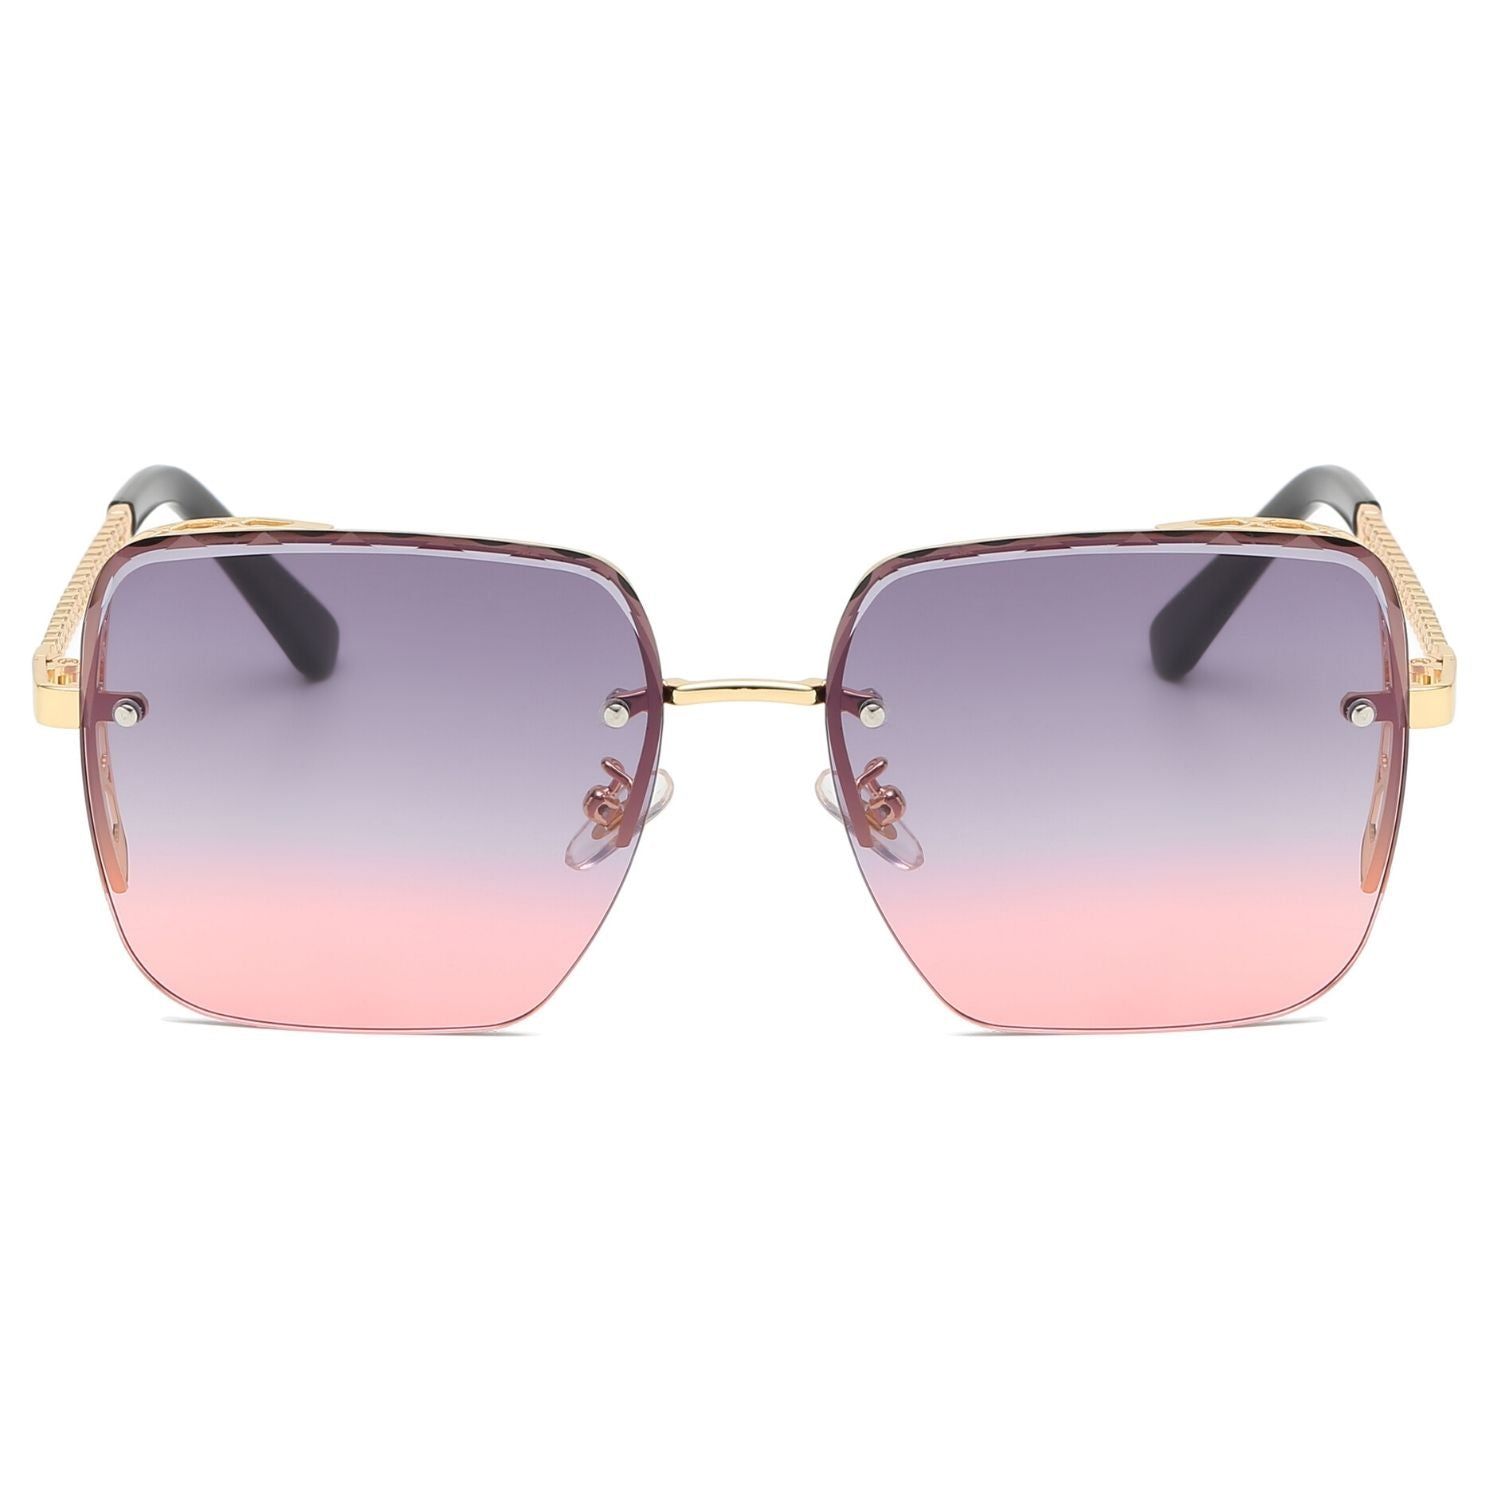 58160 - Women Flat Top Square Anti-Reflective Tinted Fashion Sunglasses